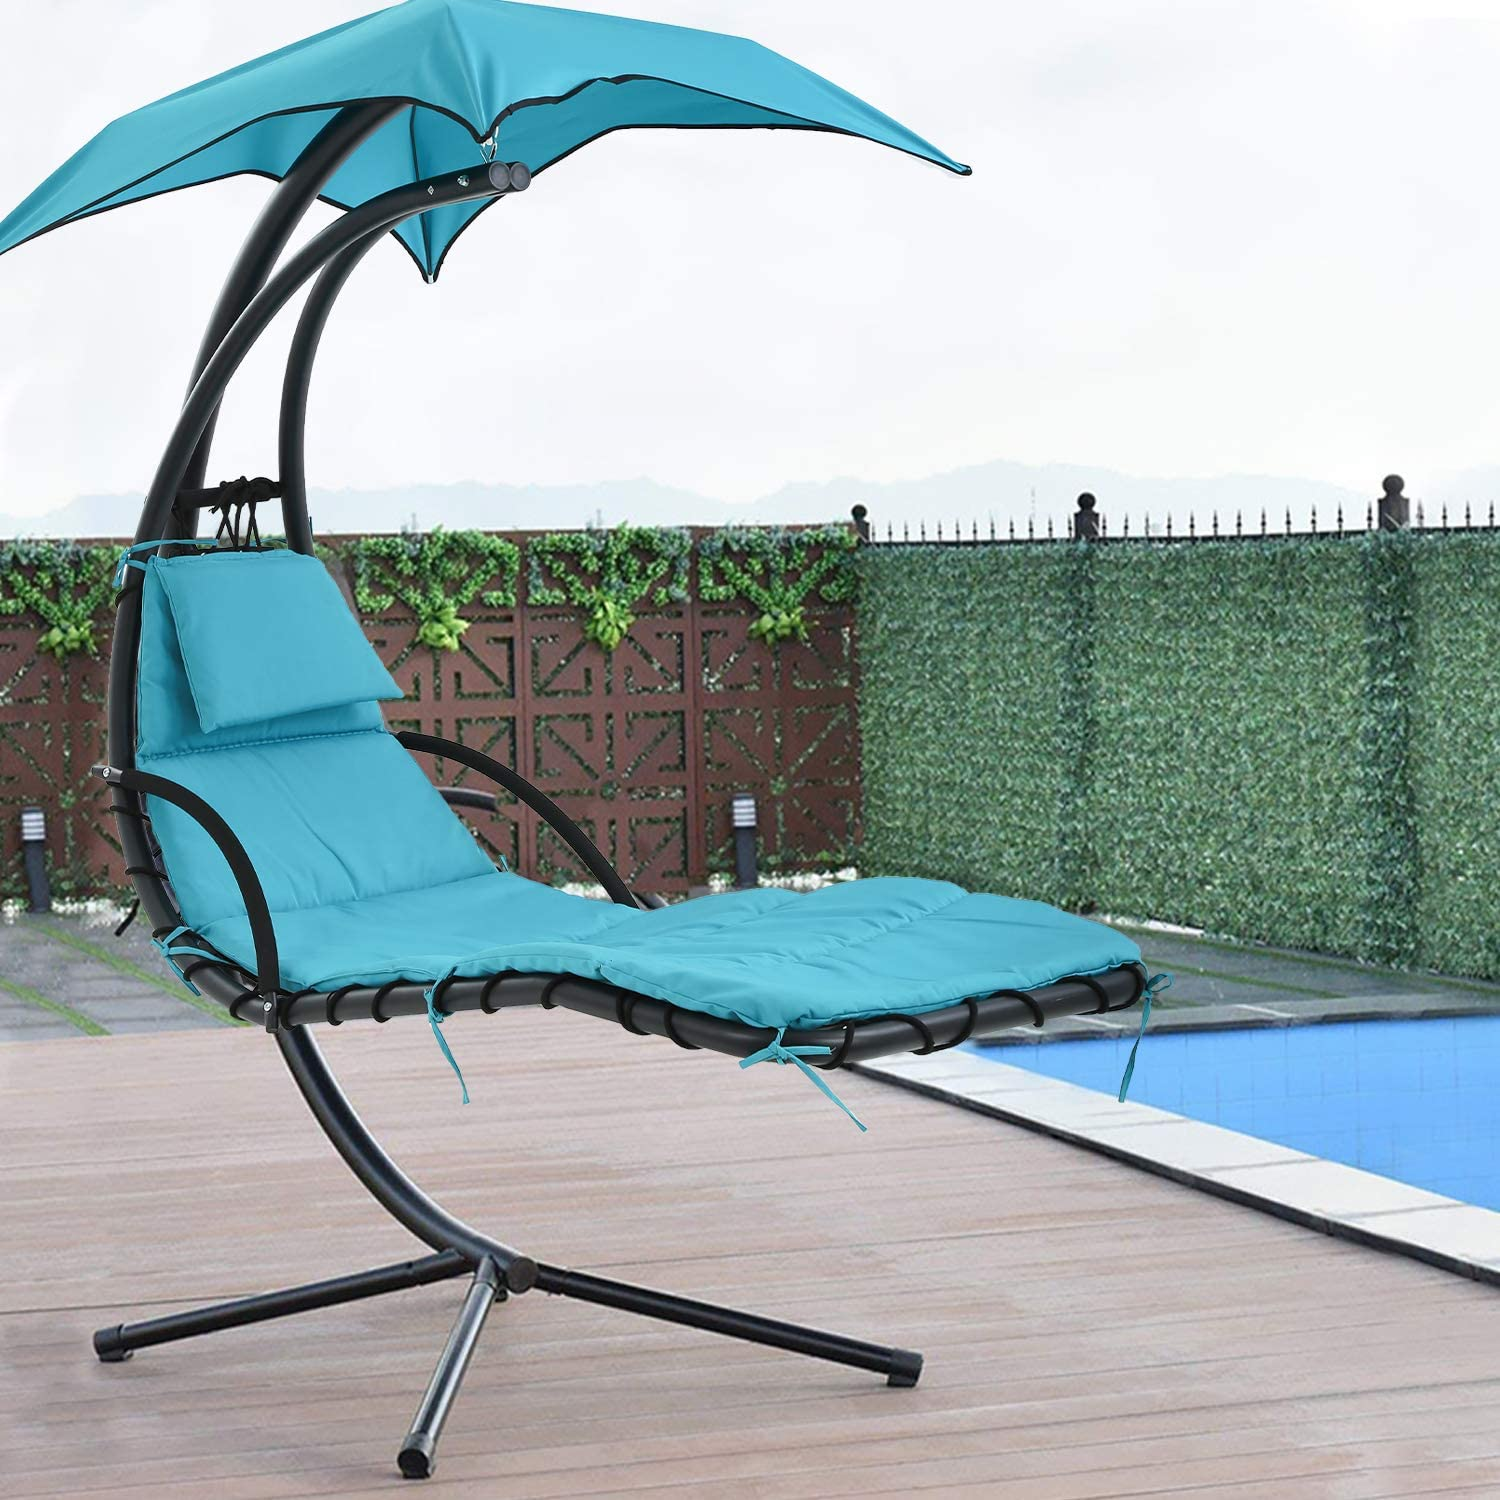 patio chair hammock stand outdoor chair swings for adults hanging chaise lounger chair floating chaise canopy swing arc stand air porch lounge chair